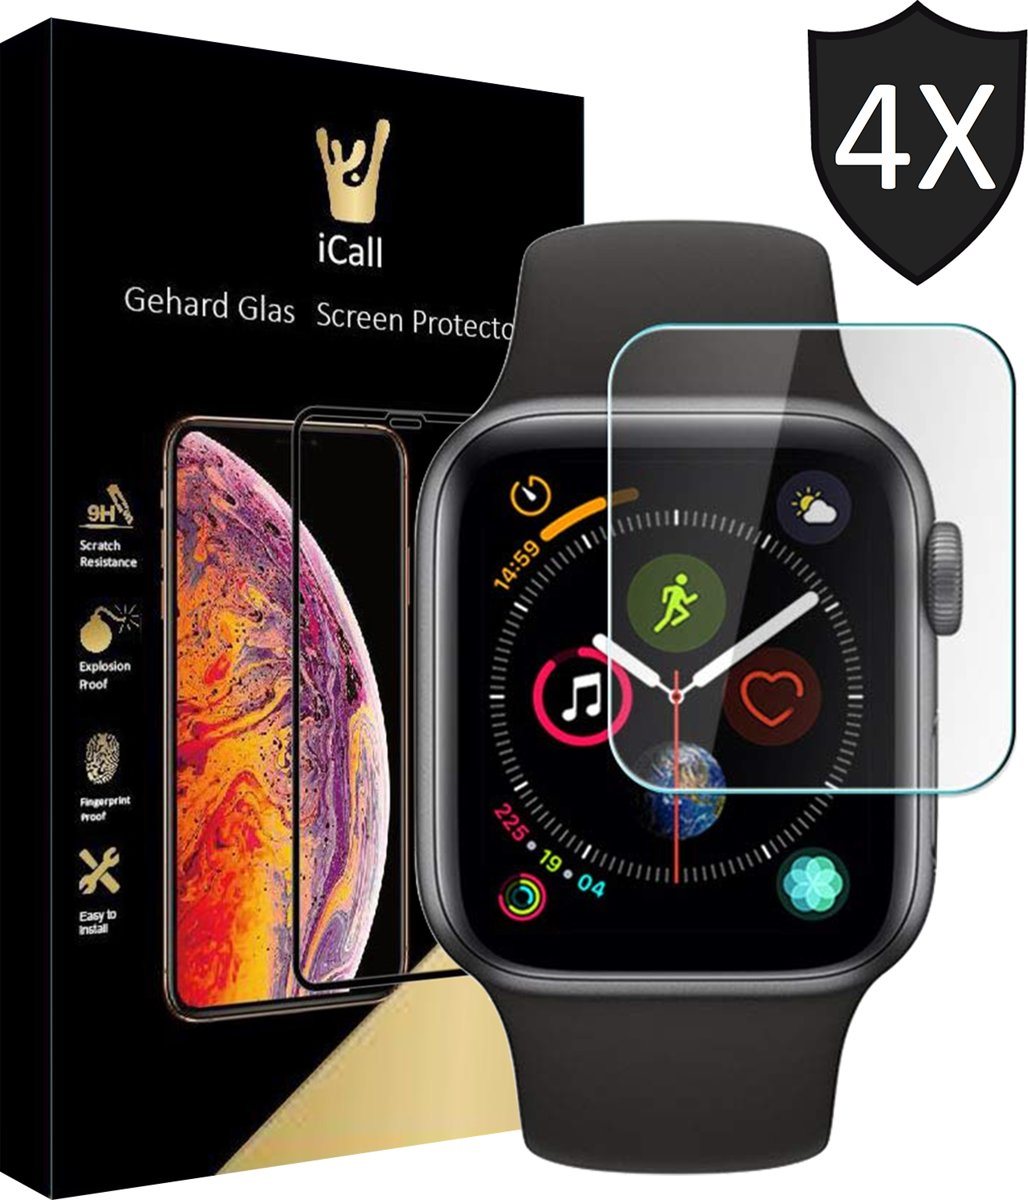 4x Apple Watch Series 1 / 2 / 3 38 mm Screenprotector Glazen Gehard | Tempered Glass Screen Protector iCall kopen